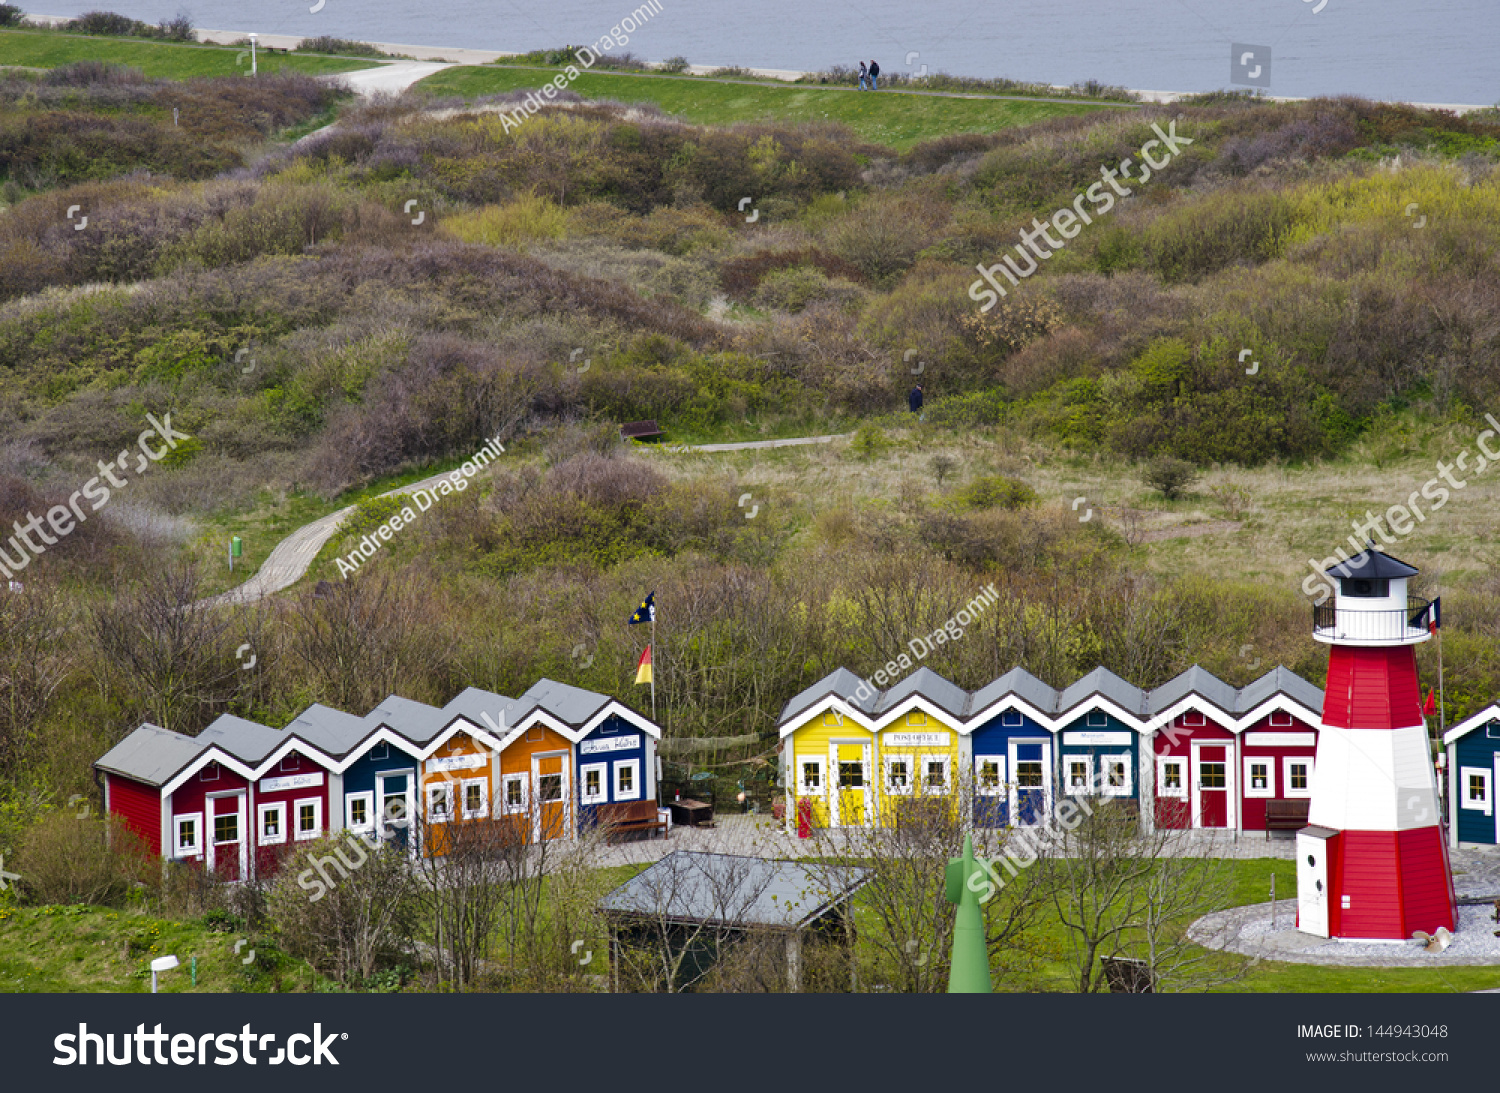 germany helgoland cottages and bungalows an oasis of tranquility and a unique natural. Black Bedroom Furniture Sets. Home Design Ideas